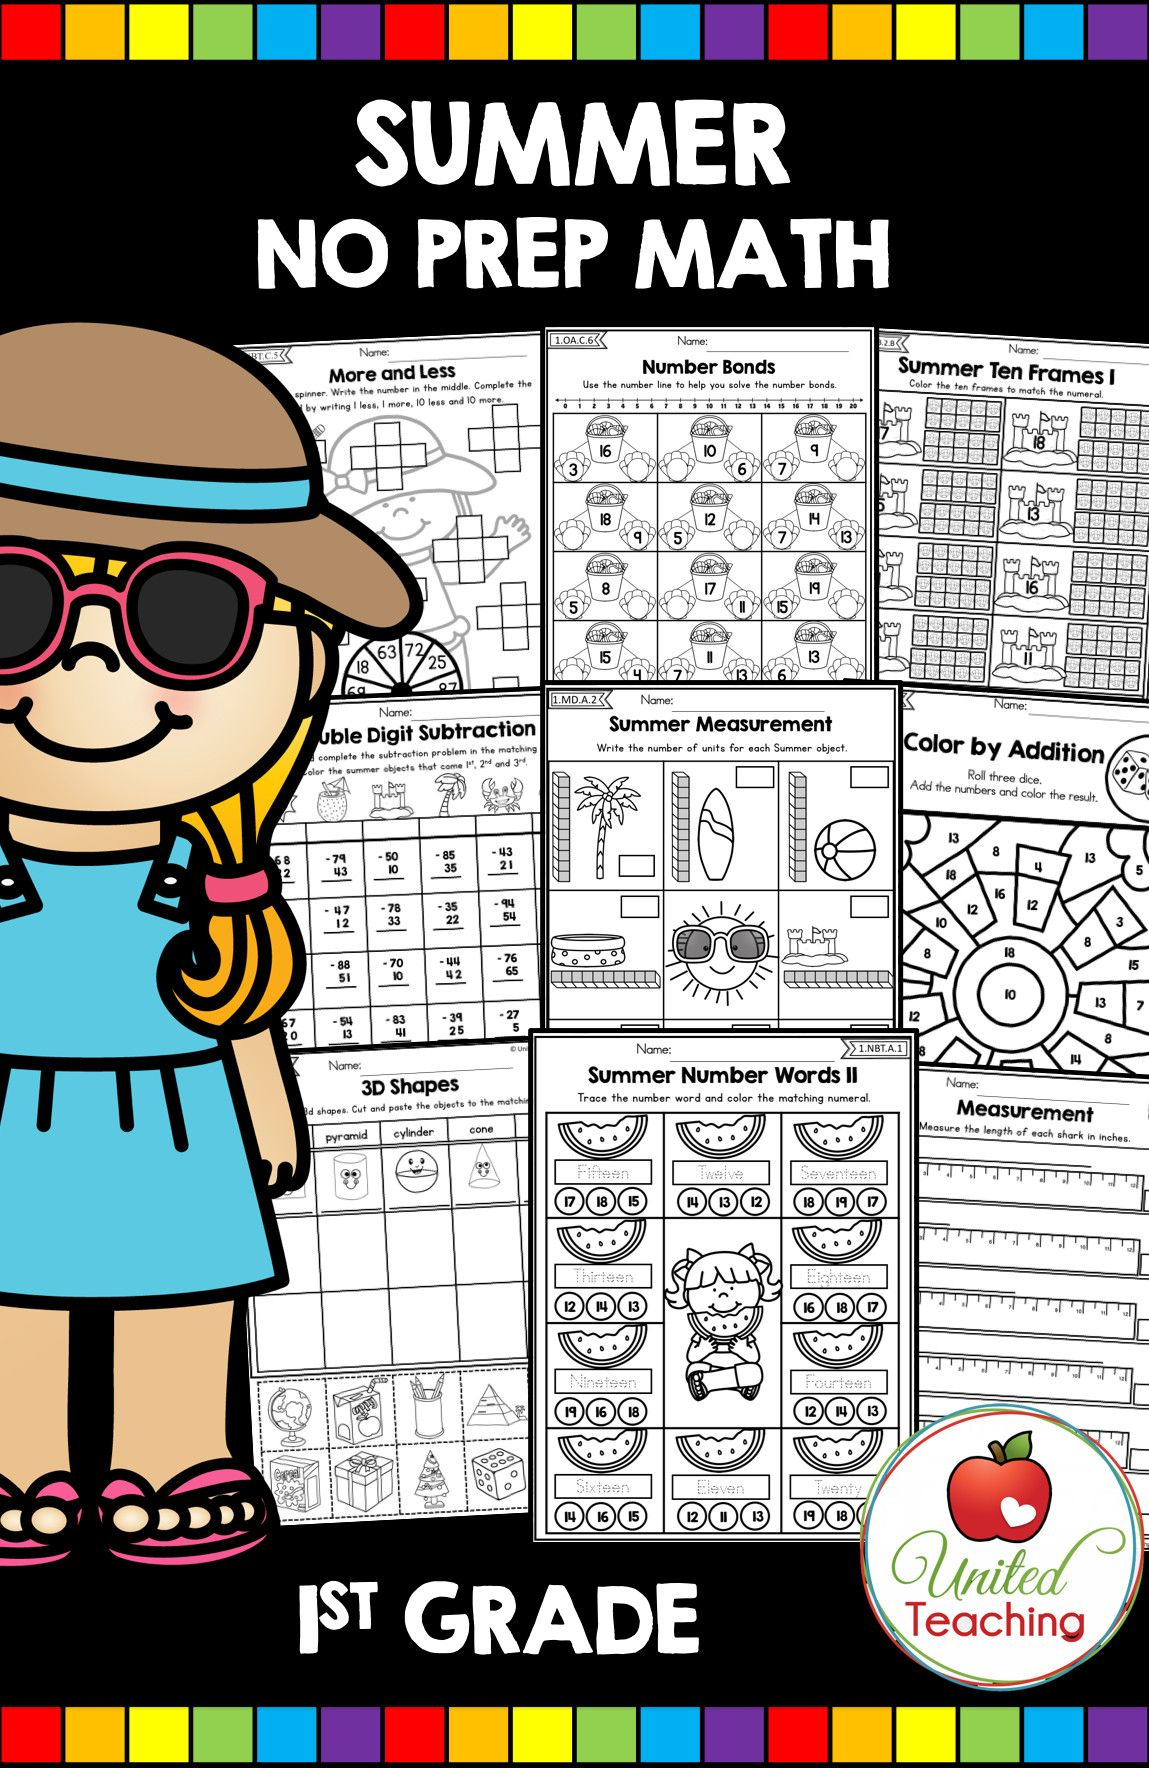 6 Summer Math Worksheet In